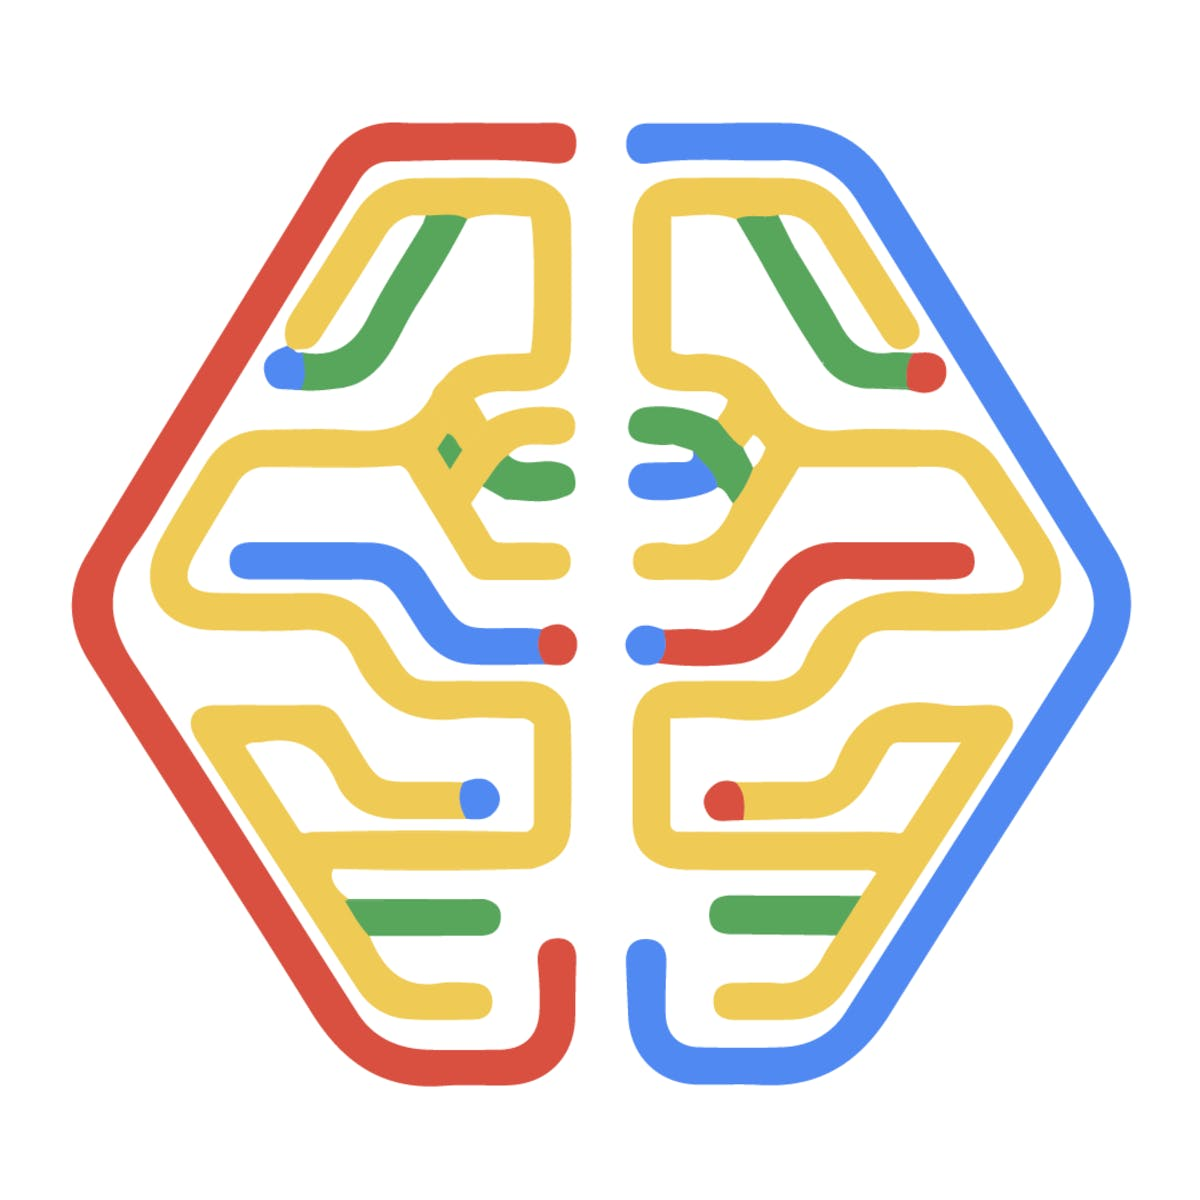 Image Understanding with TensorFlow on GCP